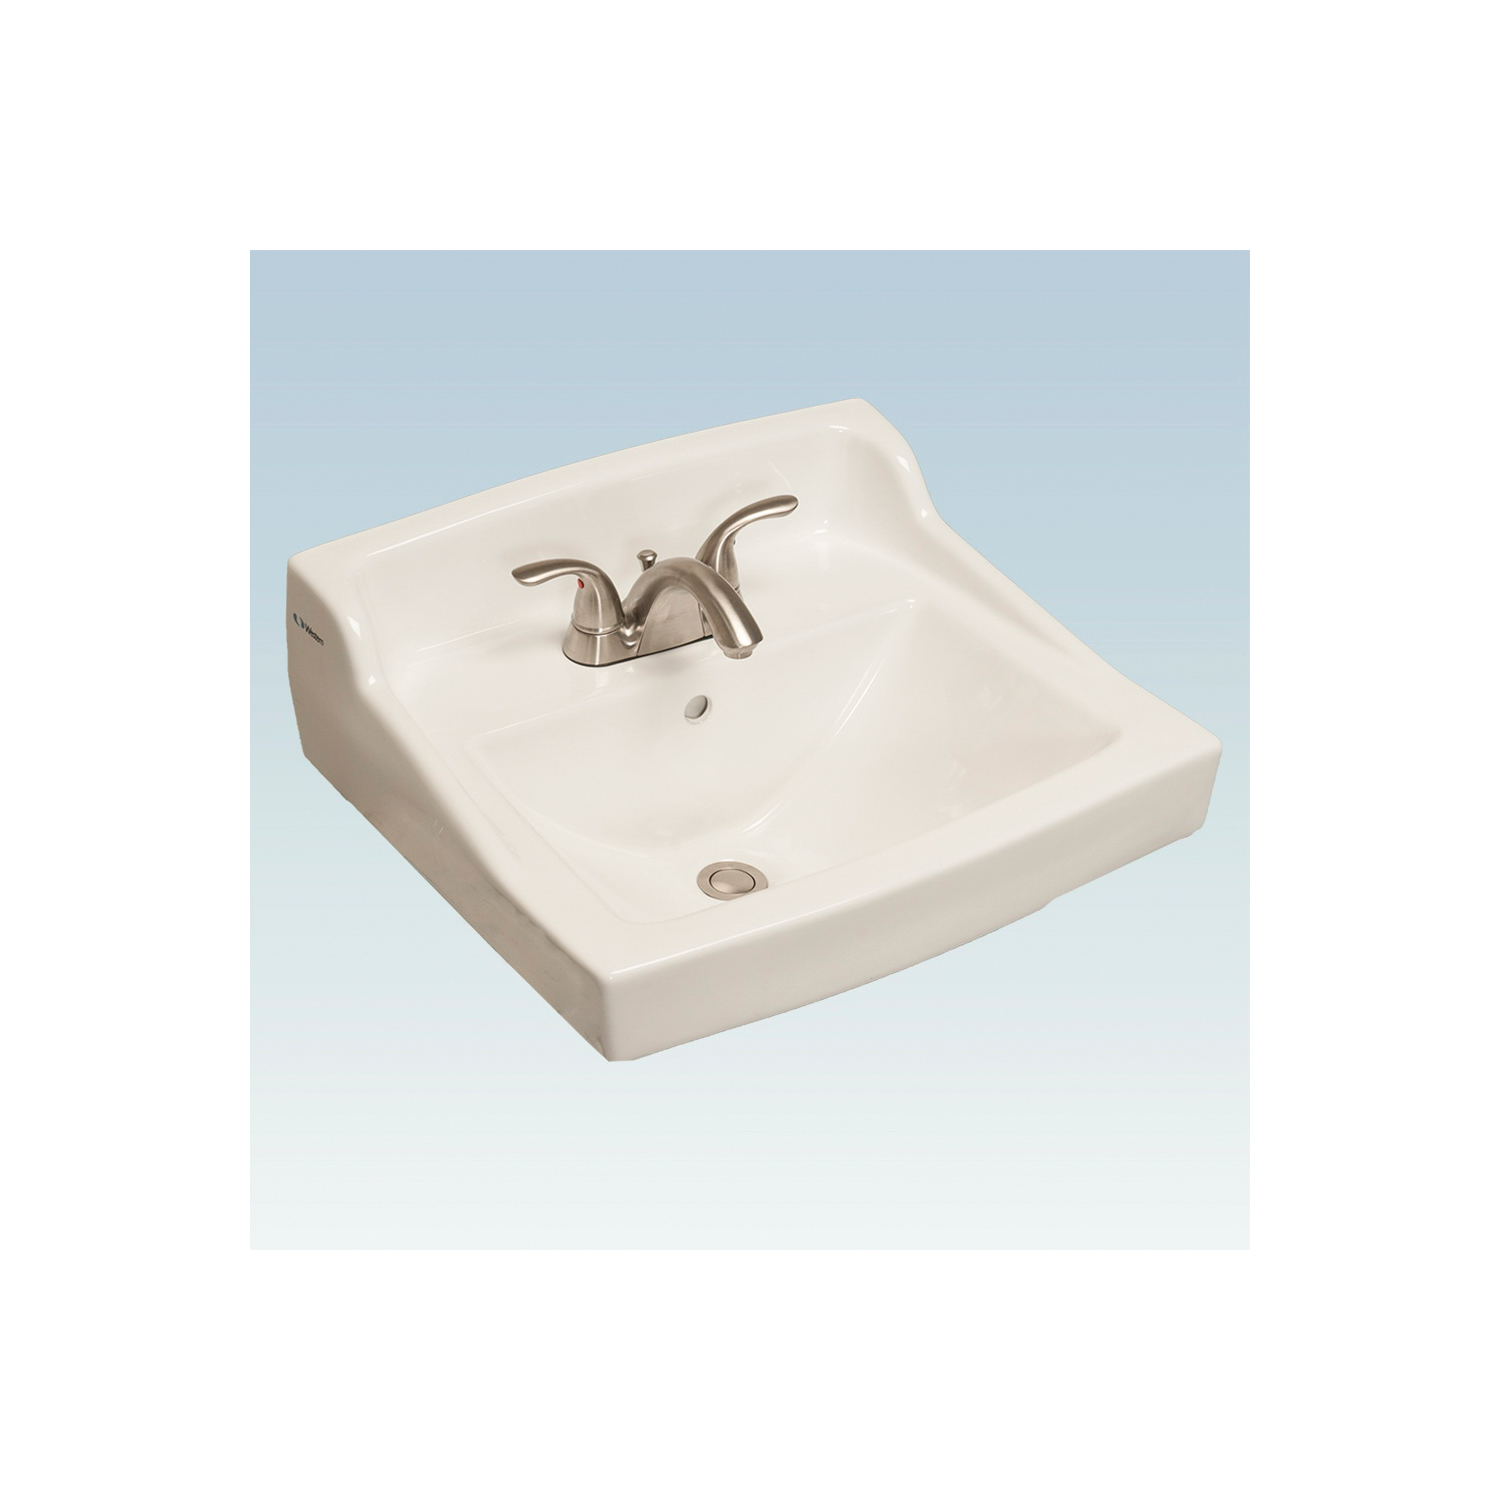 Western Pottery L400 Lavatory Sink, Rectangular, 22 X 18 In Bowl, Wall Hung